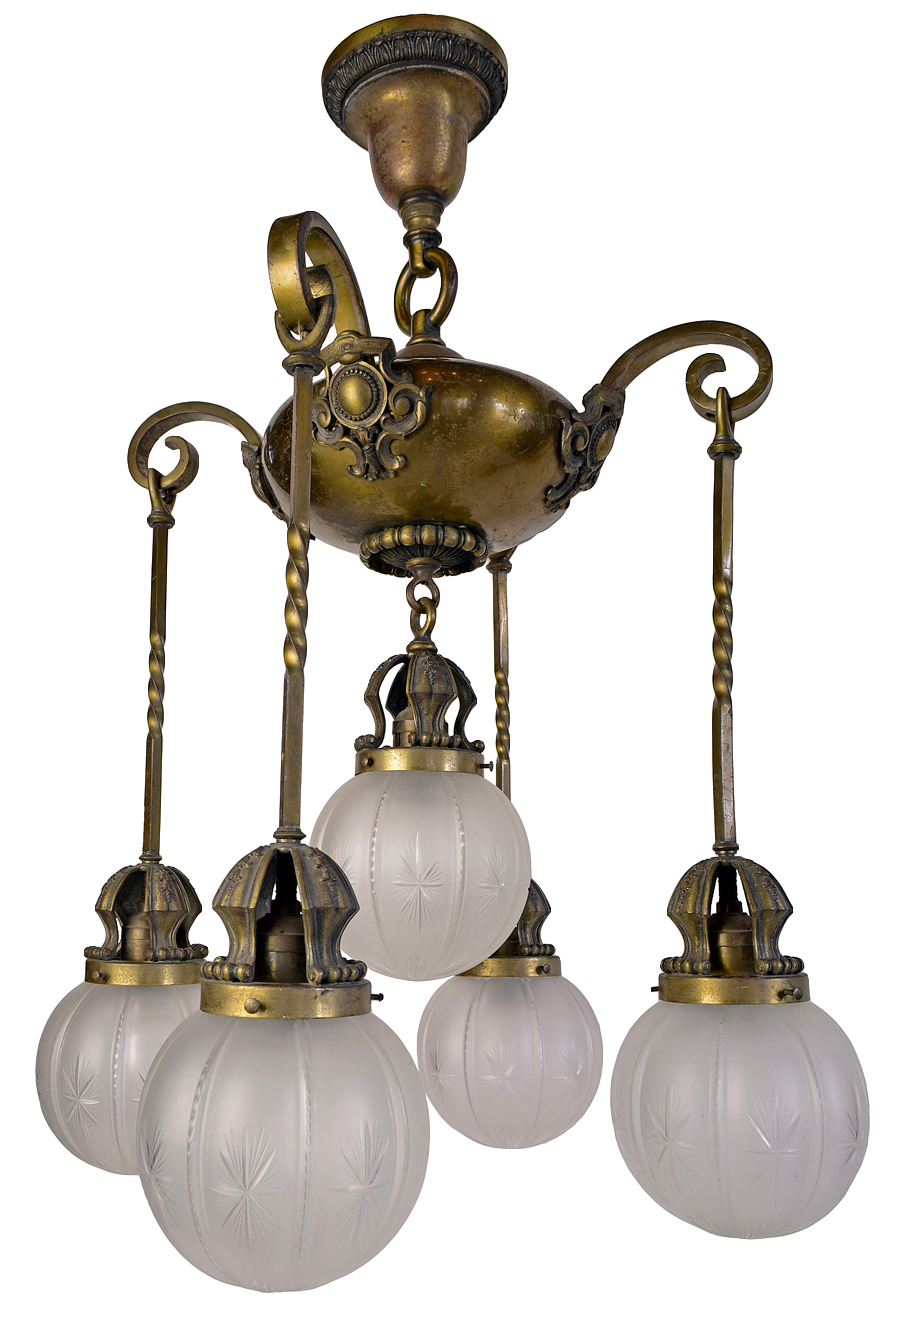 FIVE-SHADE BRASS FIXTURE WITH TWISTED RODS